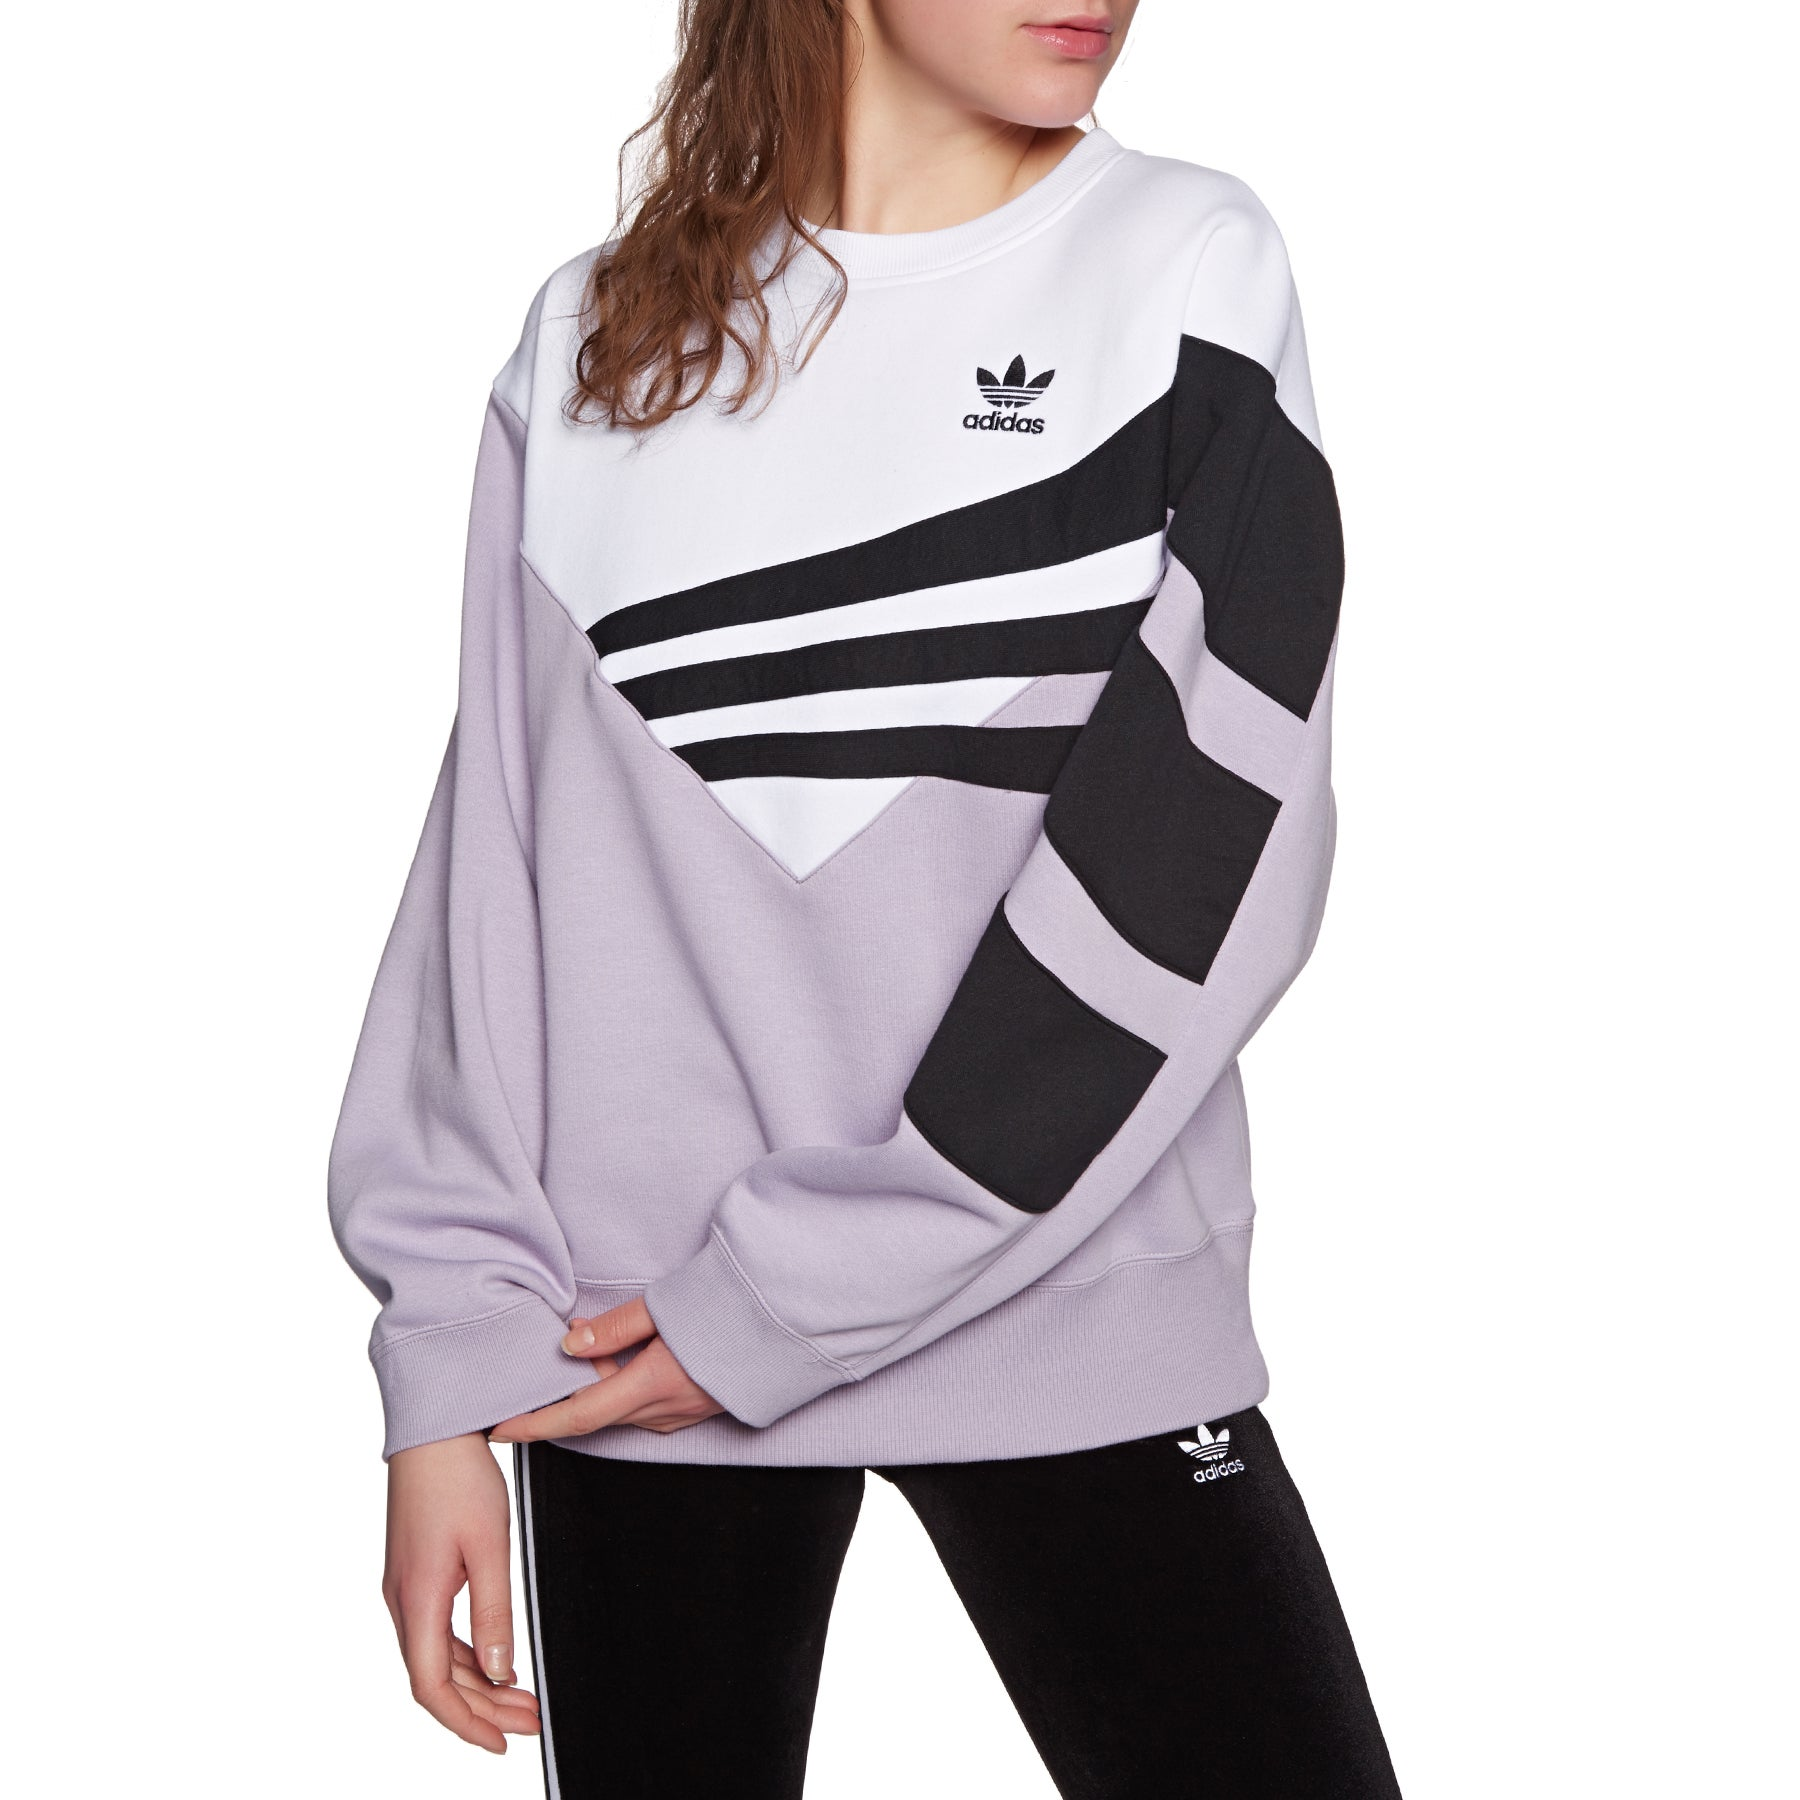 a654f4e397 Adidas Originals Adi Womens Jumper - Soft Vision White Black All ...